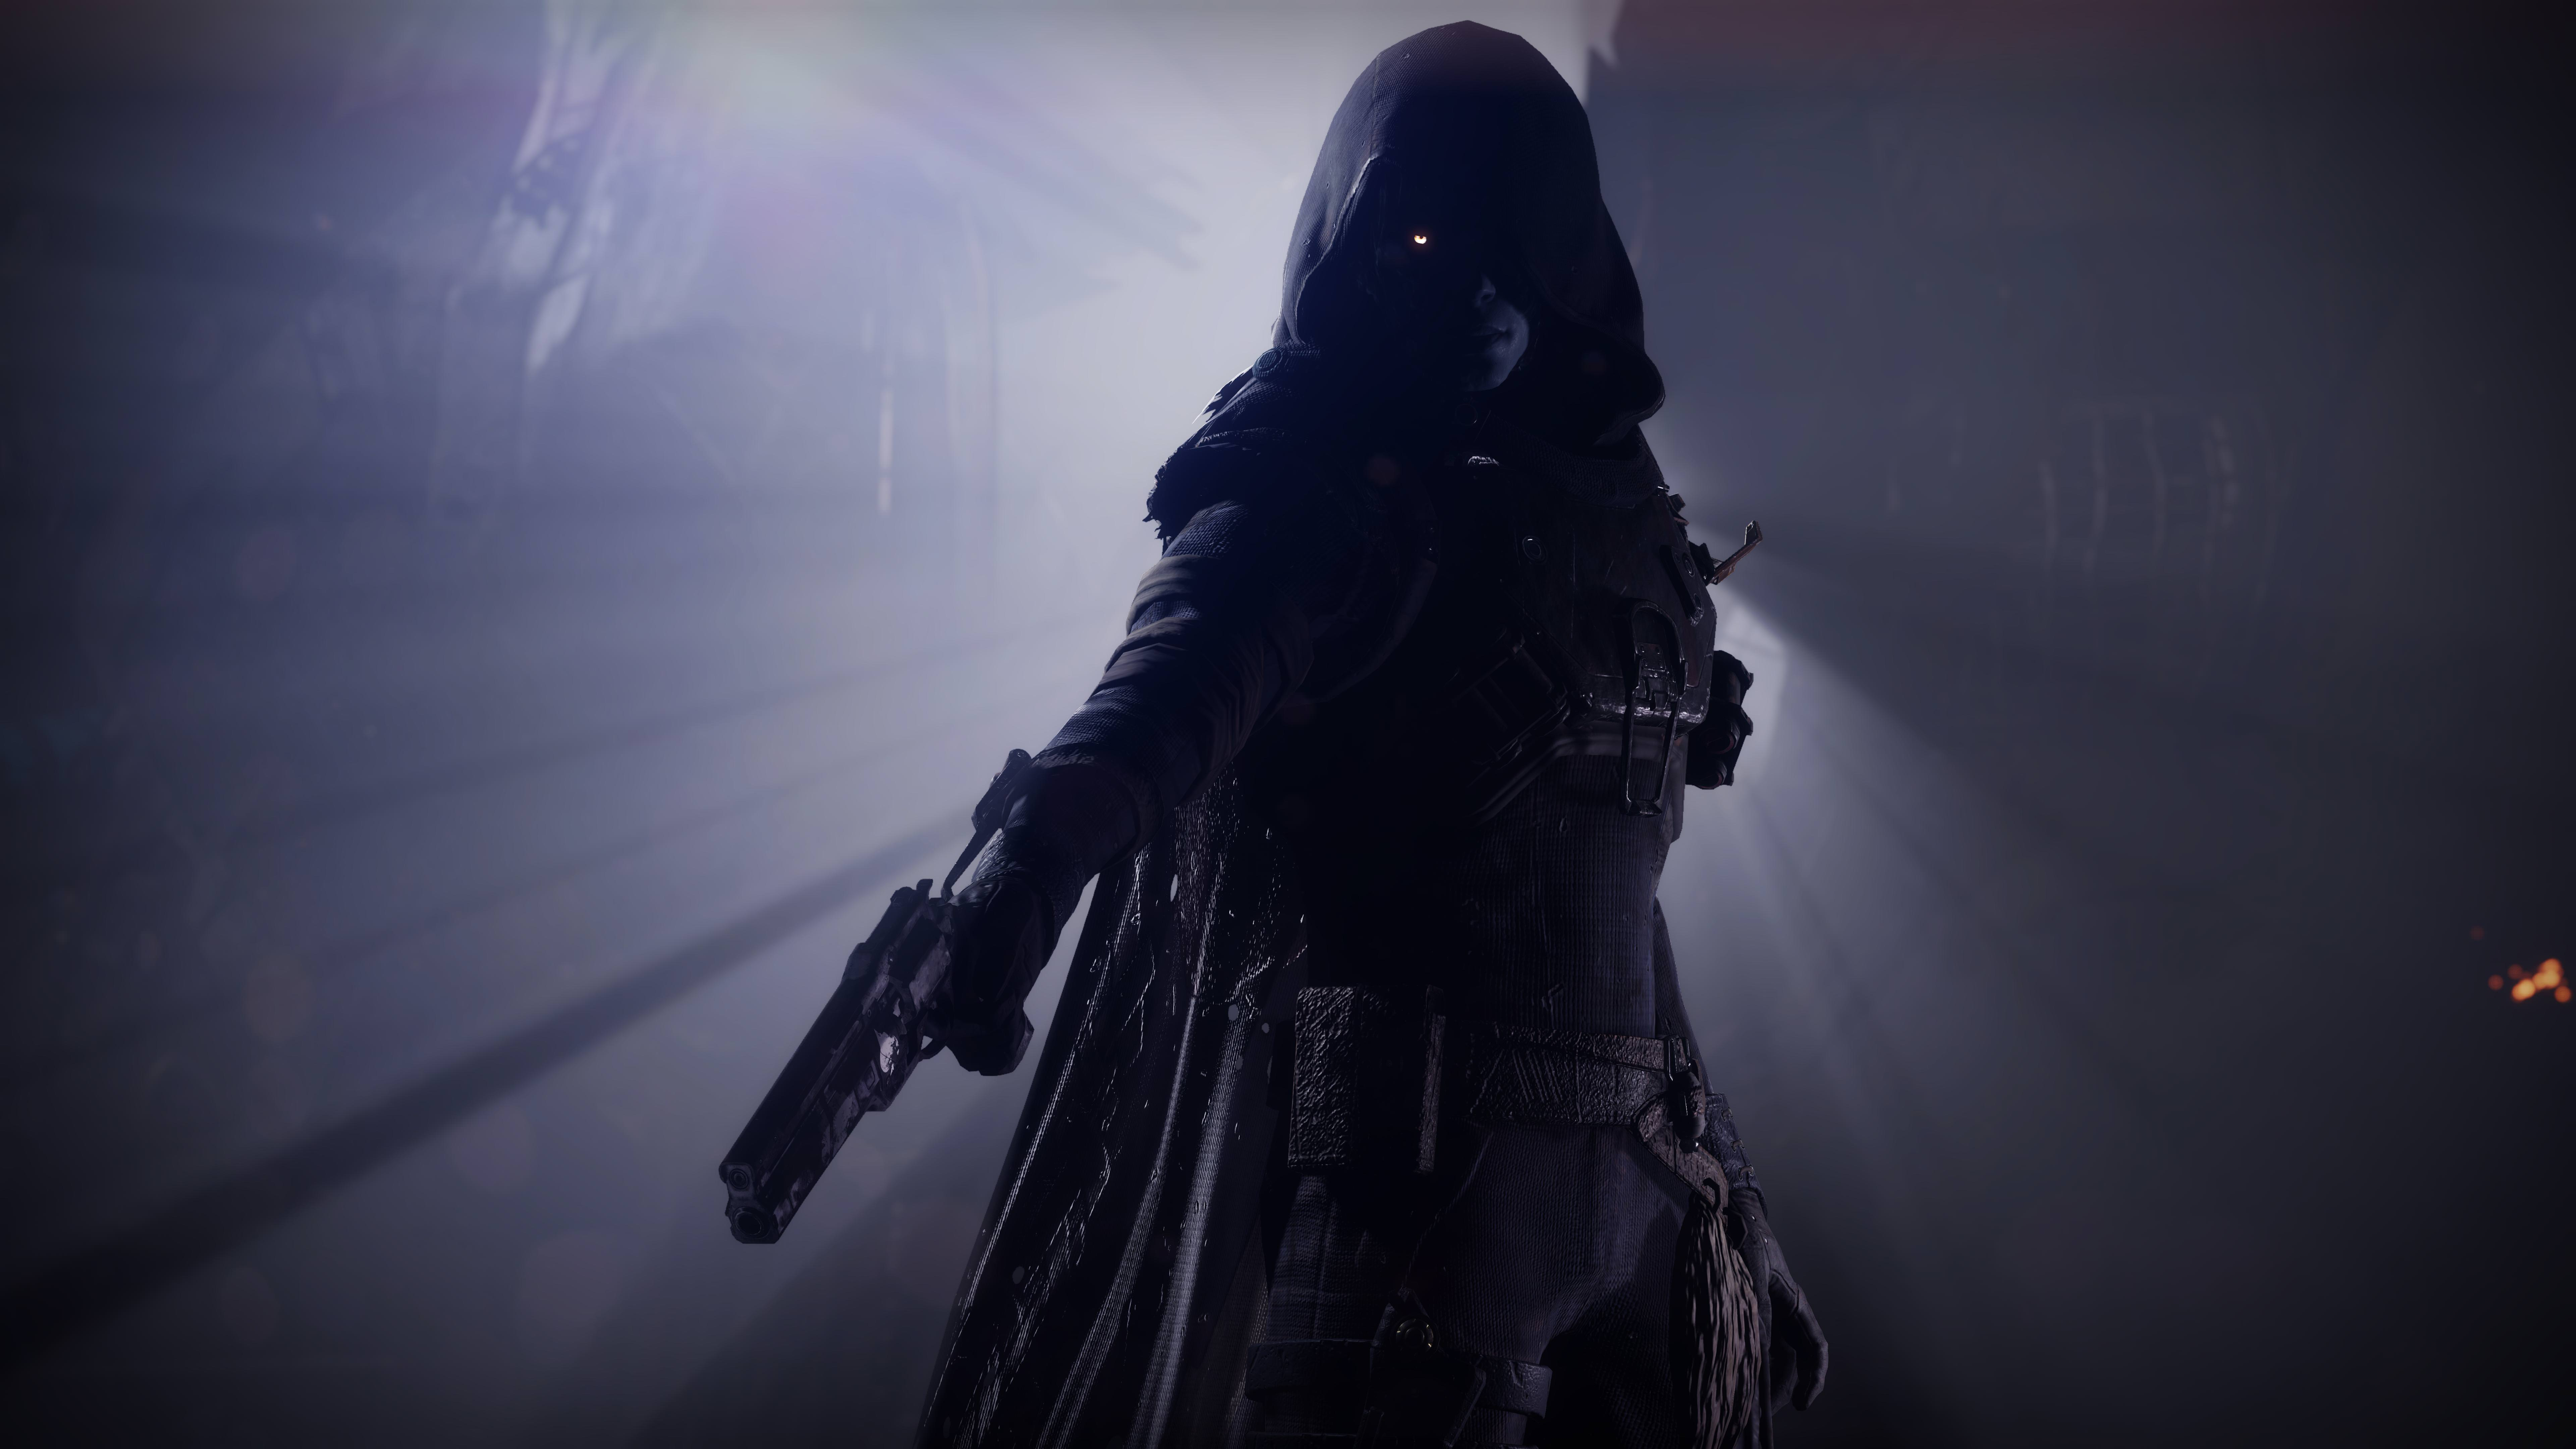 3840x2160 Destiny 2 Forsaken Uldren 8k 4k HD 4k Wallpapers